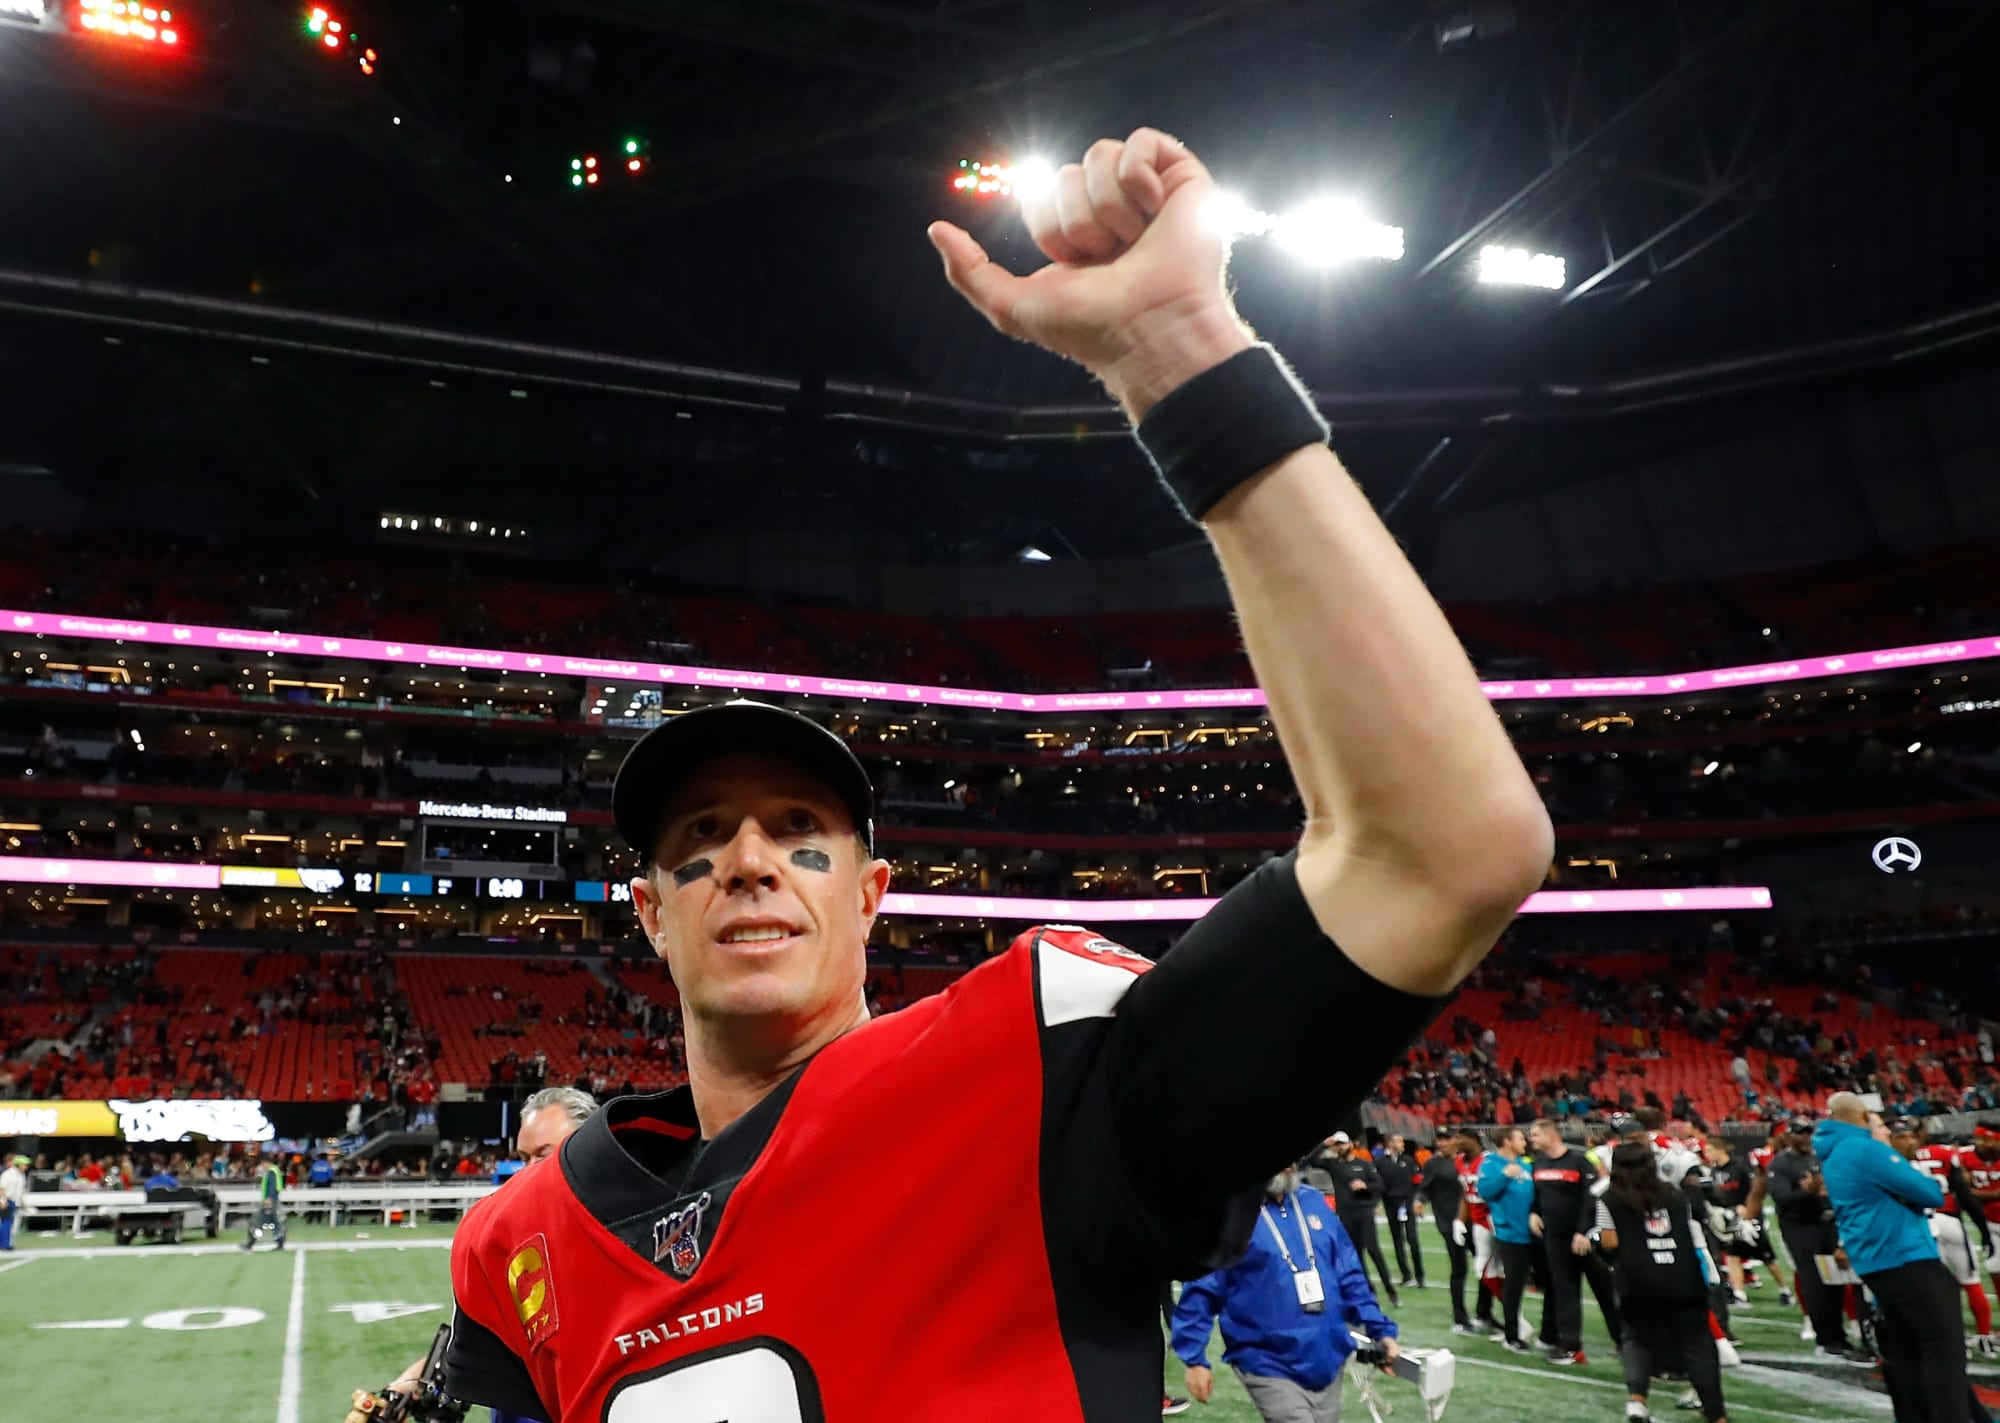 The Atlanta Falcons will avoid a first half collapse in 2020